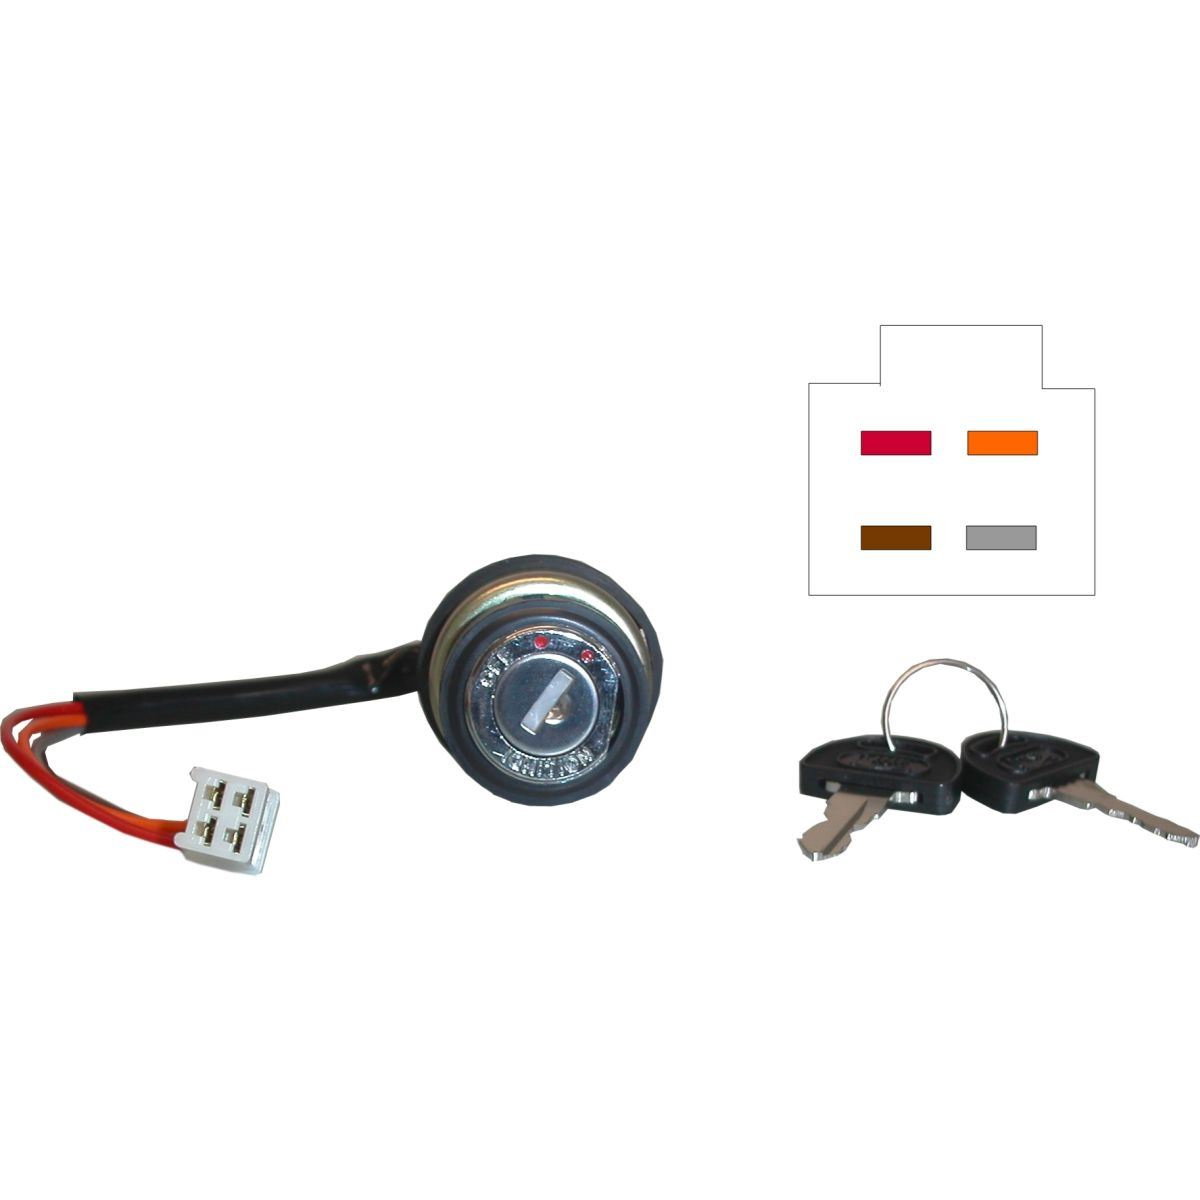 Ignition Switch For Suzuki Gt 380 K